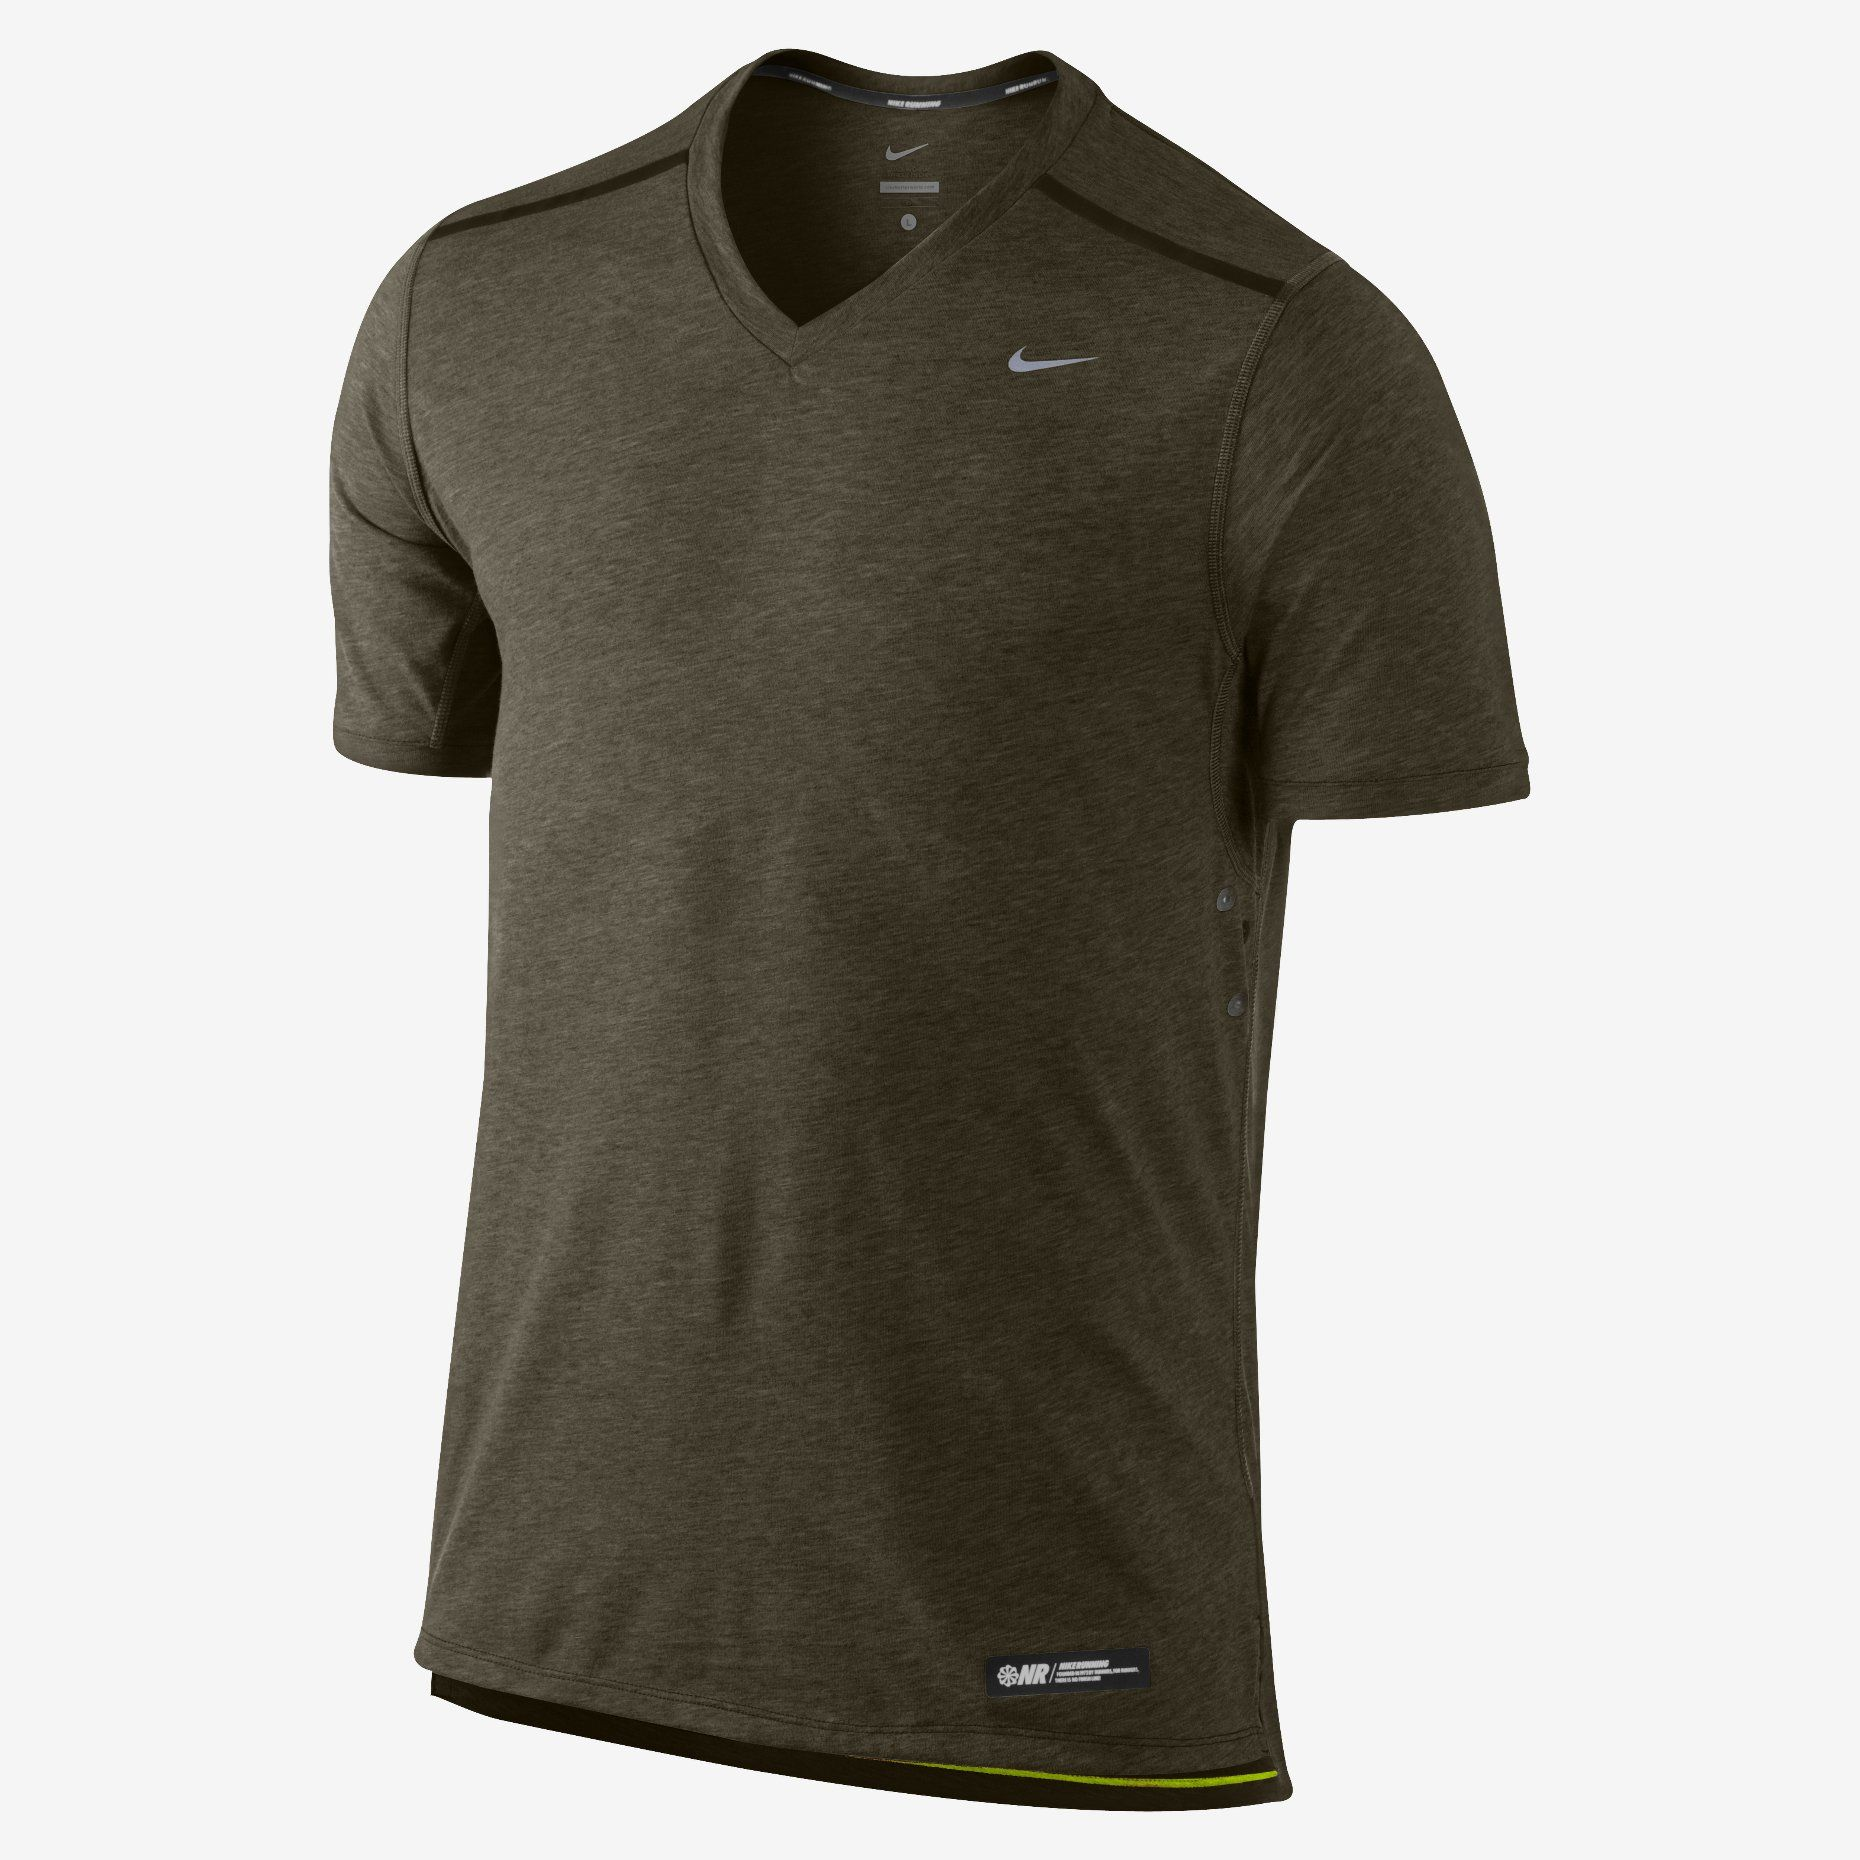 Nike Store Men's Running T-Shirt